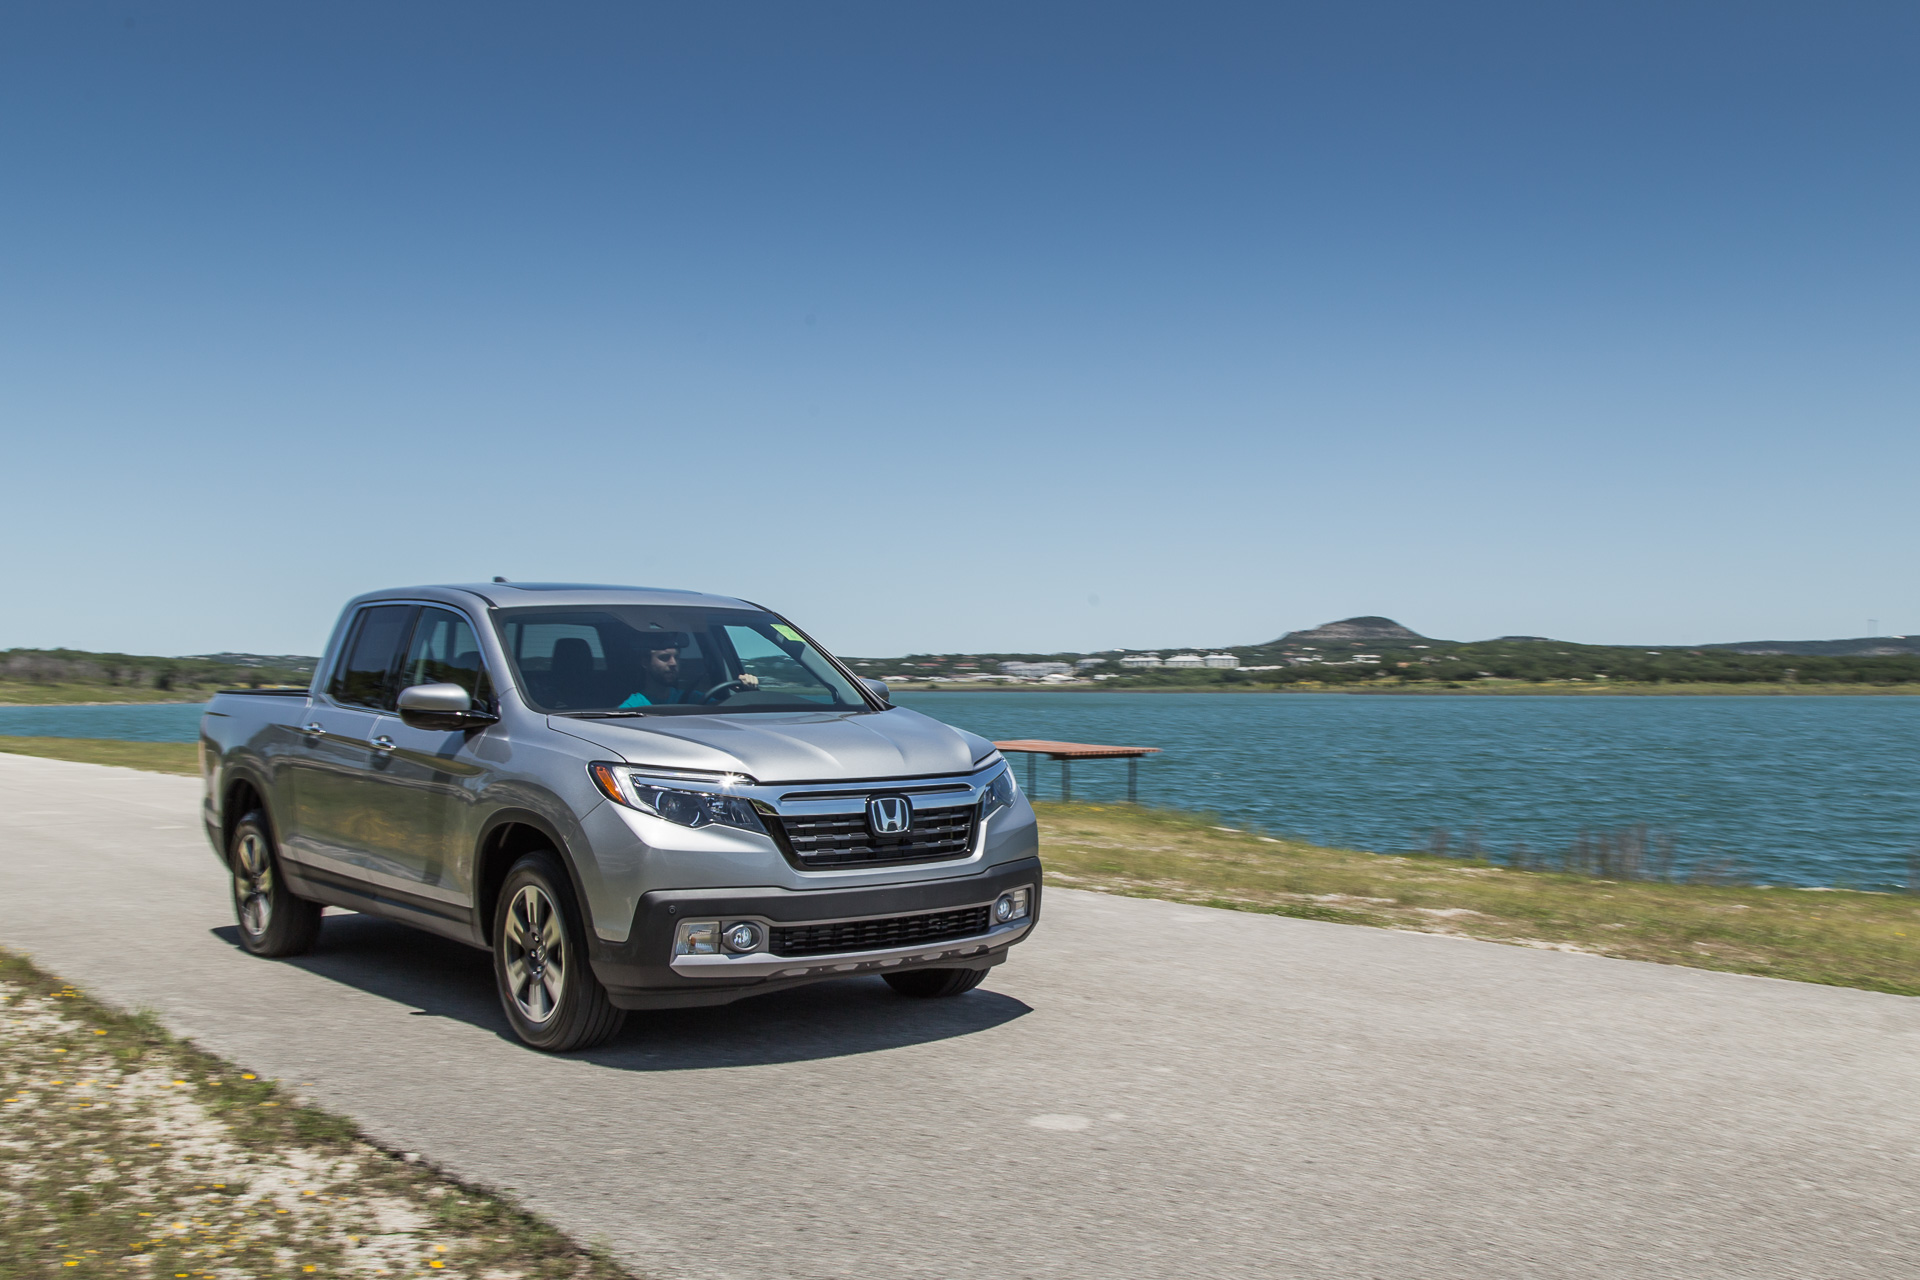 2017 Honda Ridgeline First Drive Review – Tacking into the ...